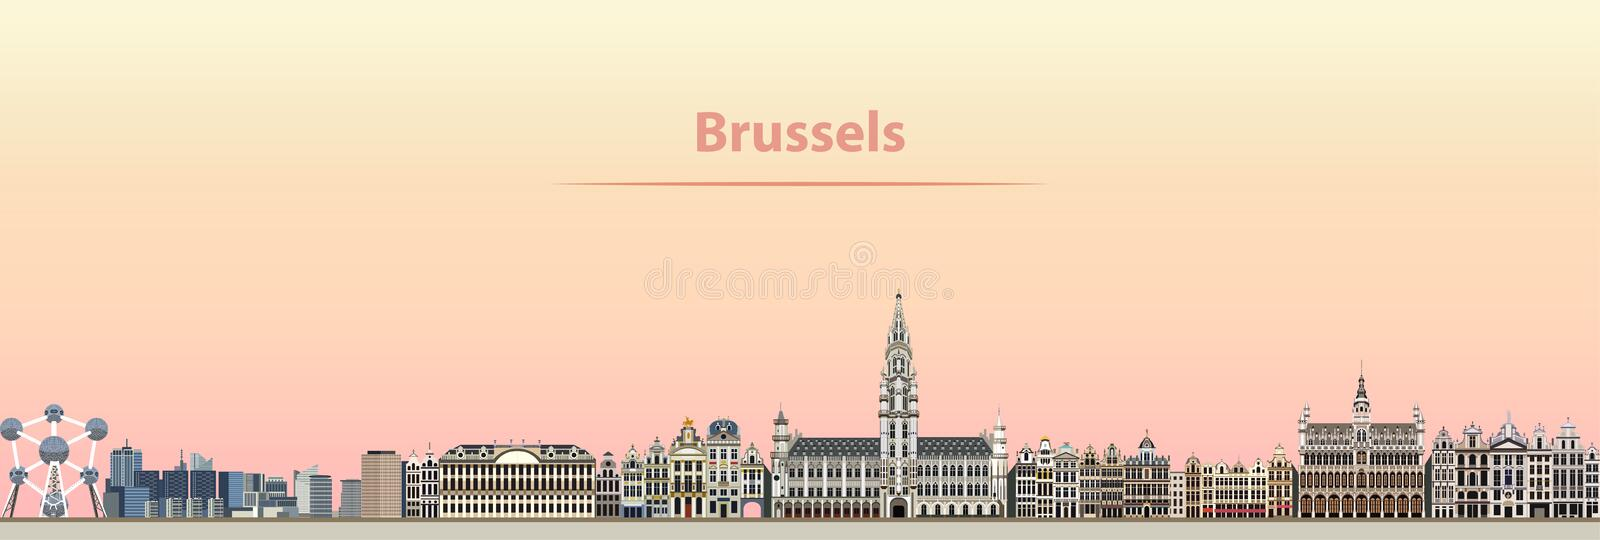 Vector abstract illustration of Brussels city skyline at sunrise royalty free illustration